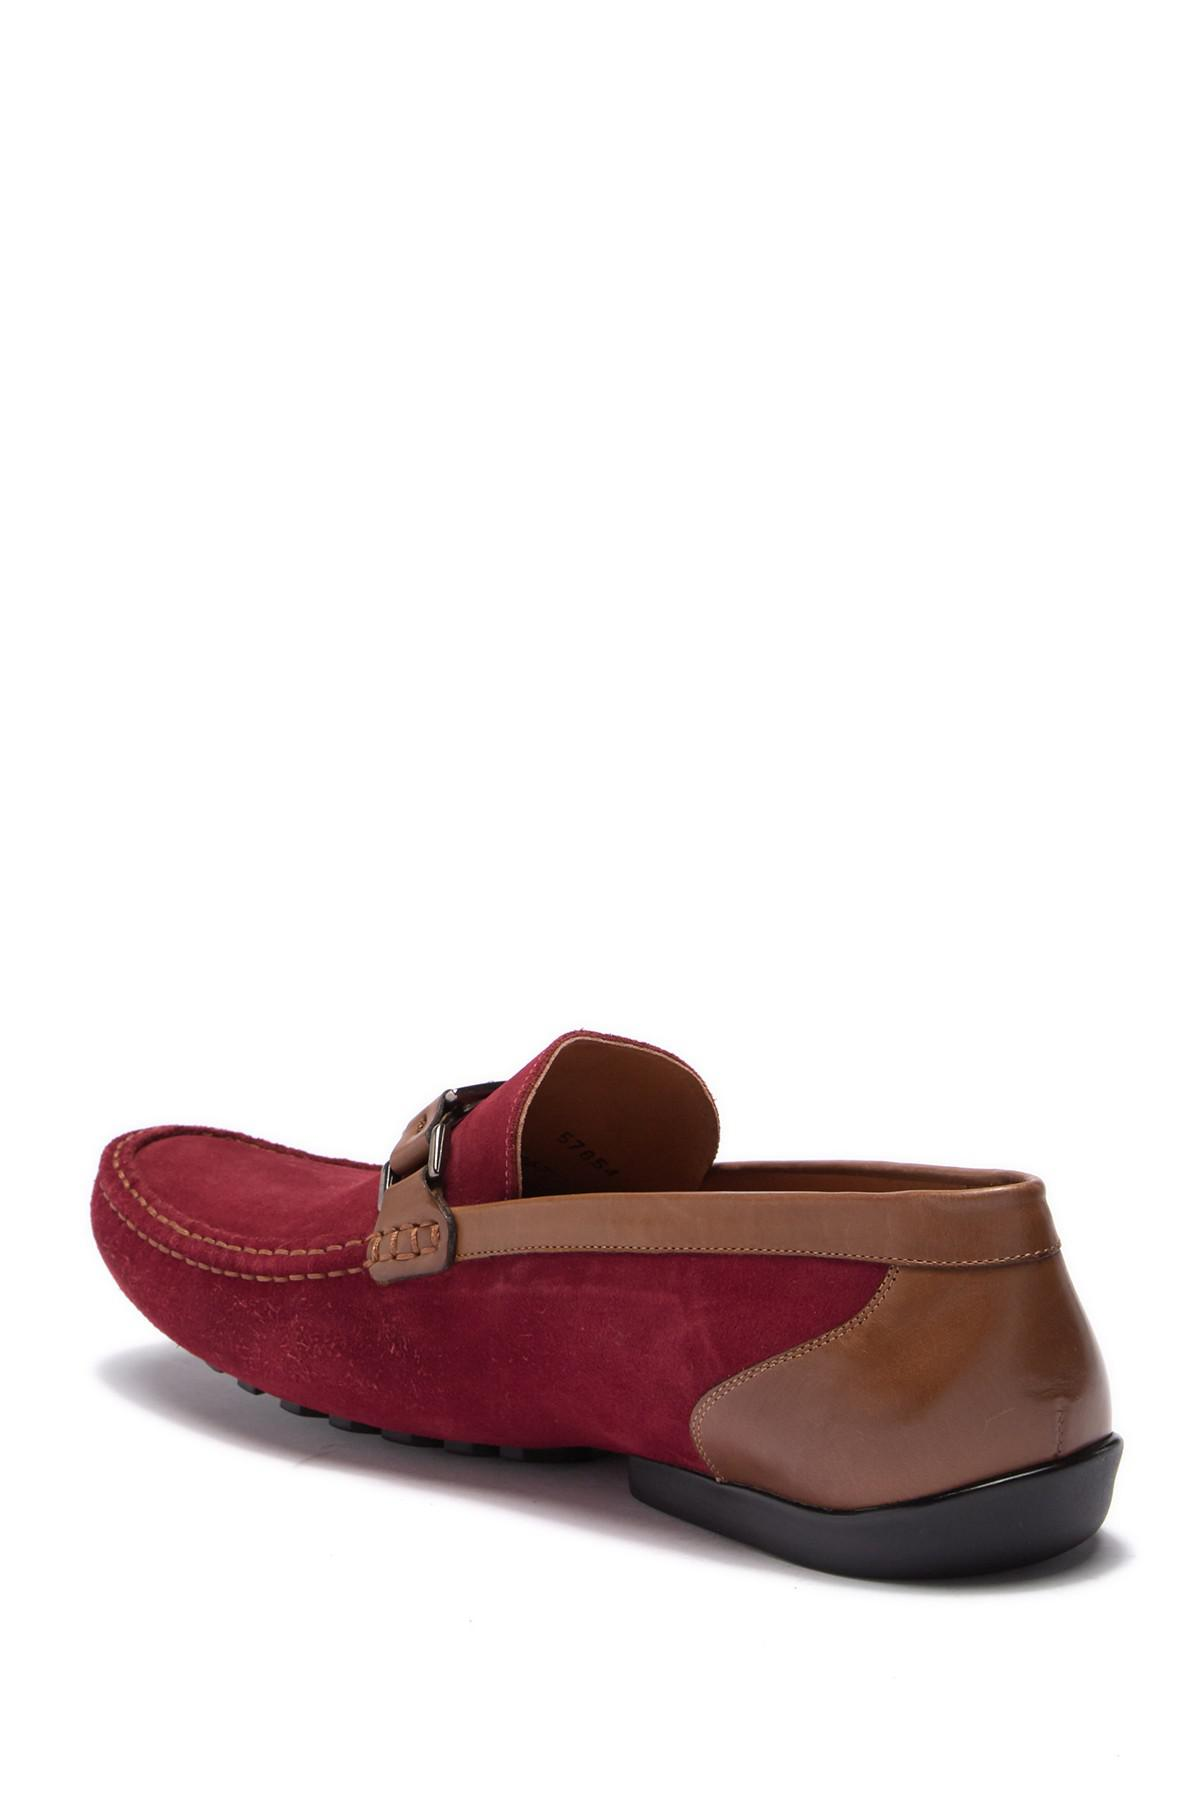 c3b0a59a895 Lyst - Mezlan Taddeo Driving Shoe in Red for Men